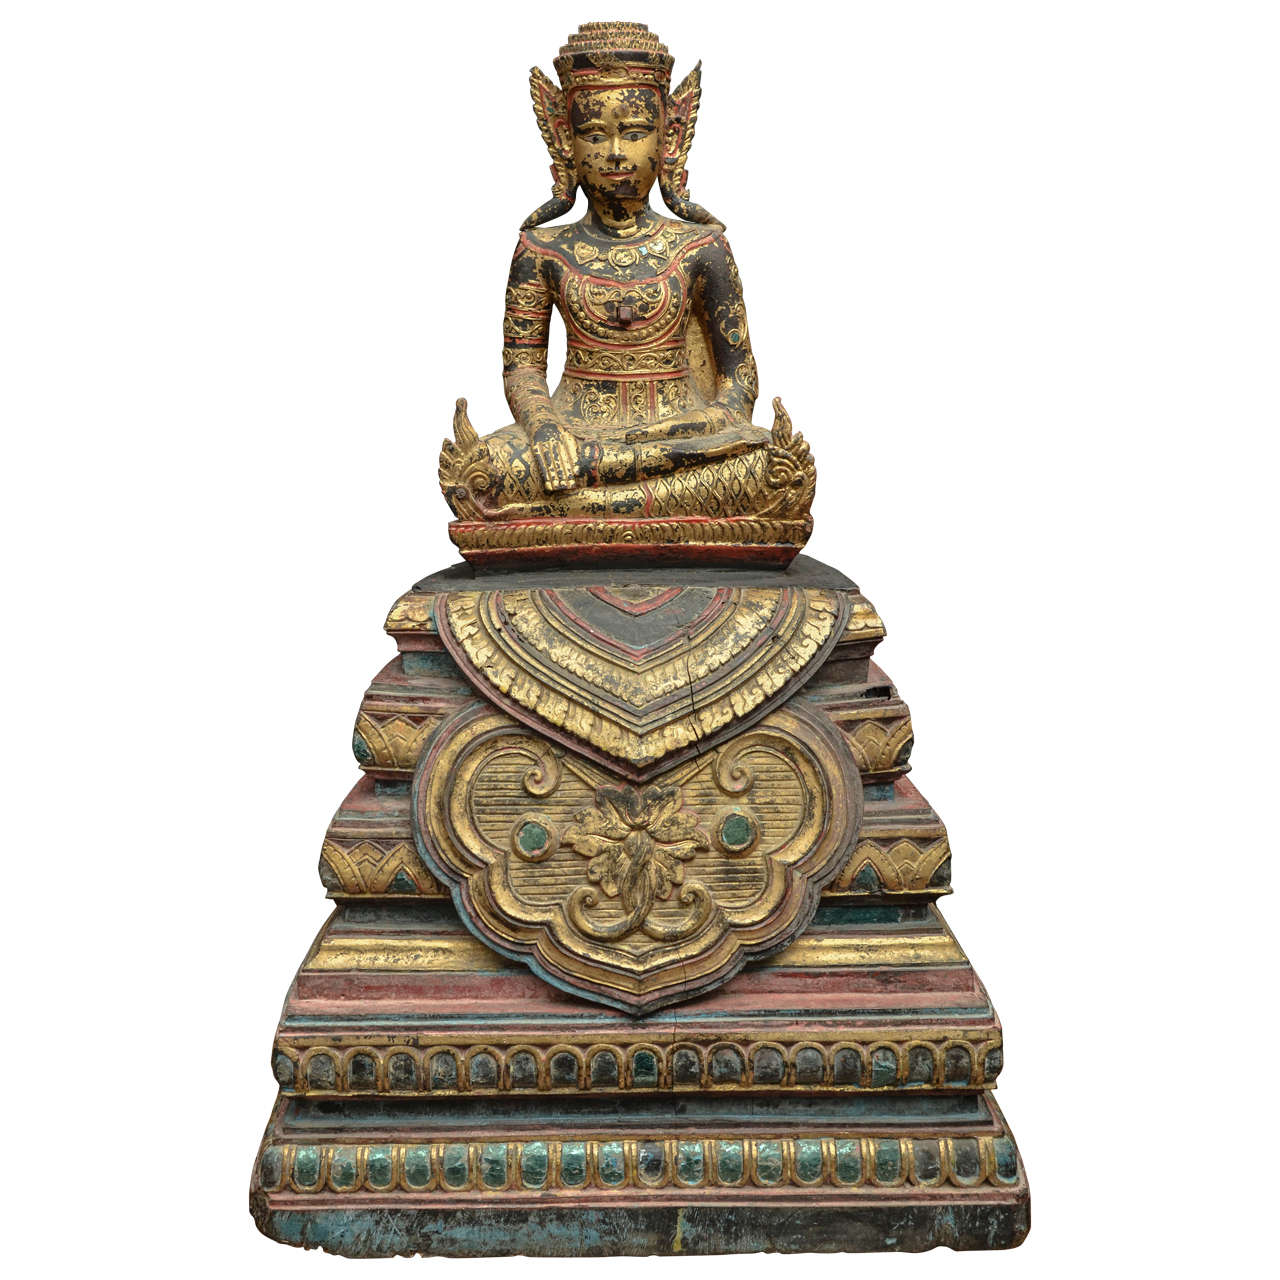 19th Century Carved and Parcel-Gilt Cambodian Seated Buddha in Royal Dress 1